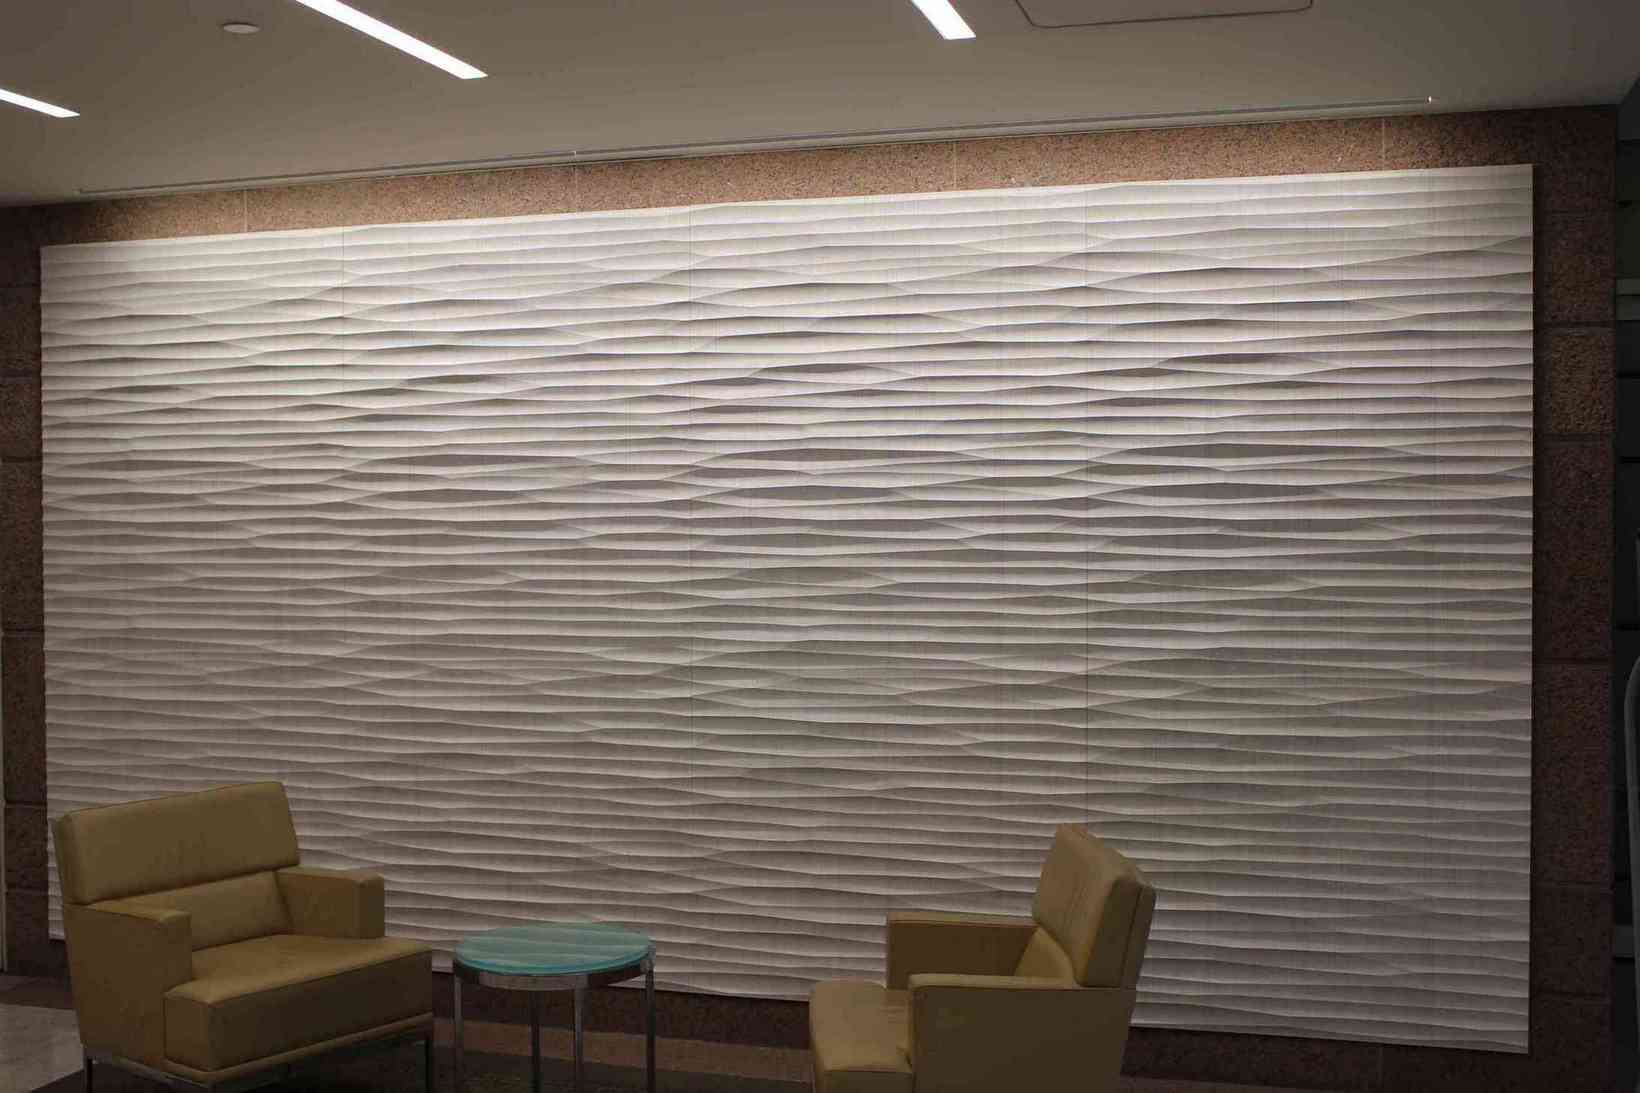 Wall covering ideas for living room wall panels a trendy for Drawing room wall ideas